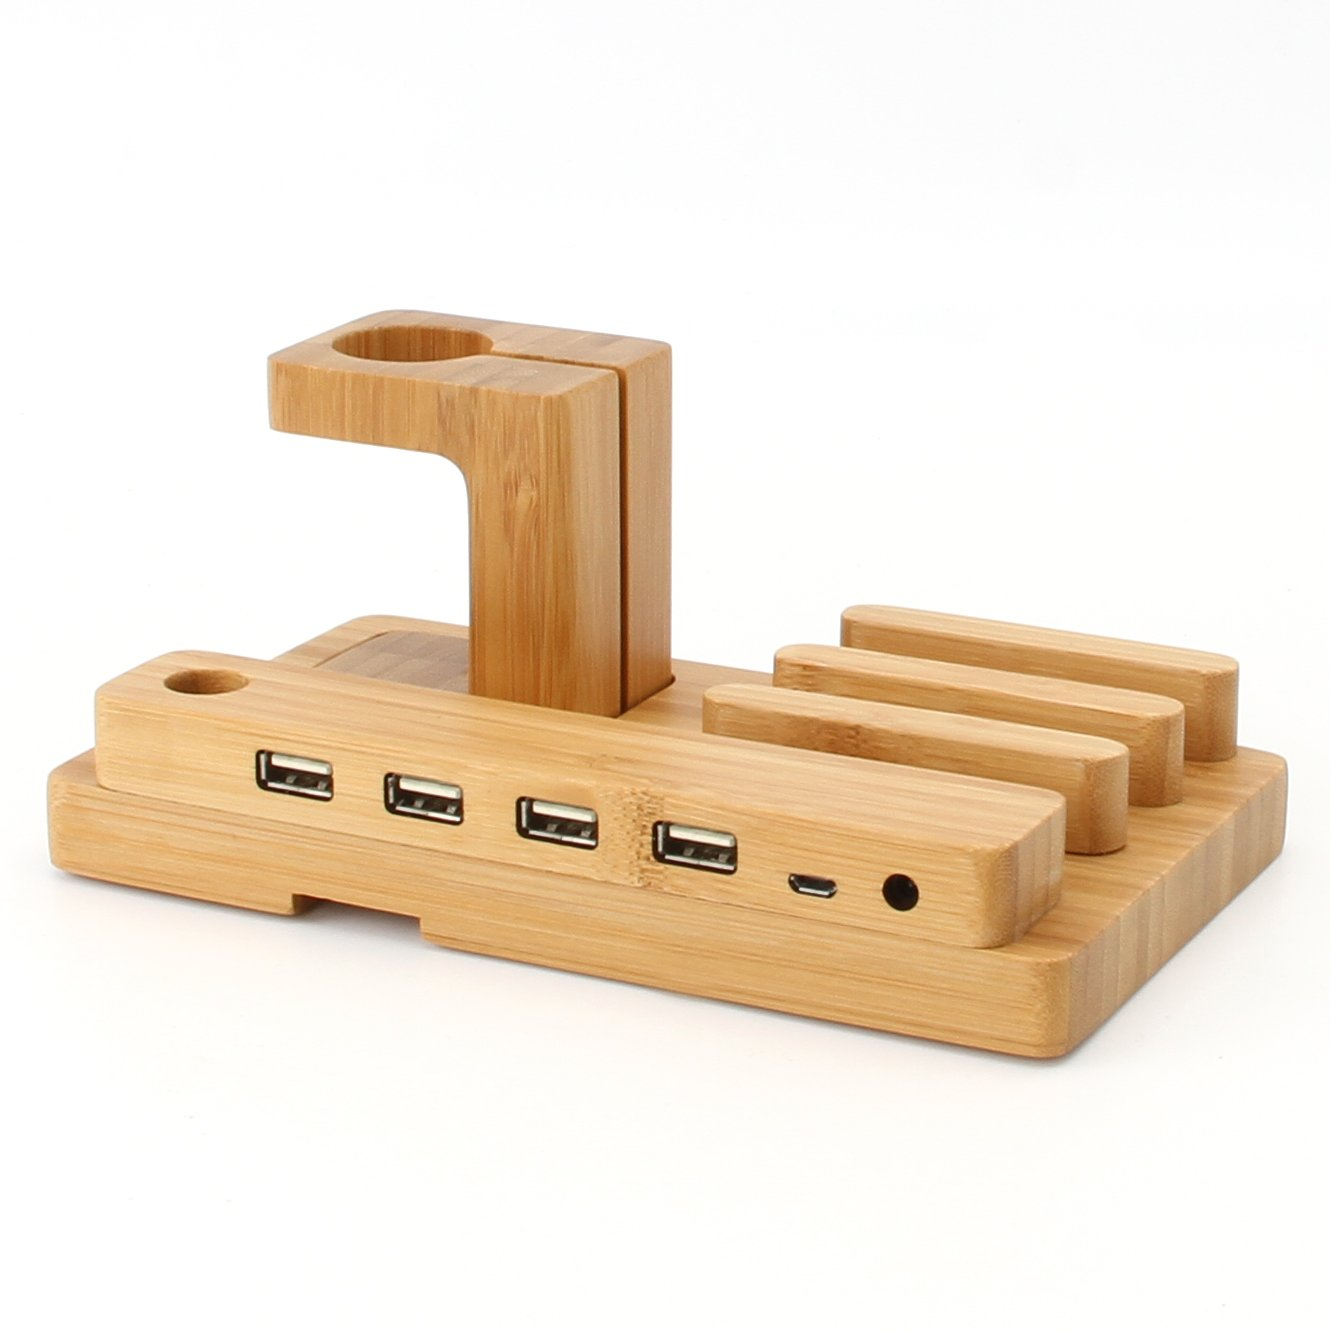 OJA 5-Port USB Desktop Bamboo Charging Station Universal Multi Device Dock Organizer Apple Watch Stand for iOS & Android Smartphones, Tablets & Apple Watch